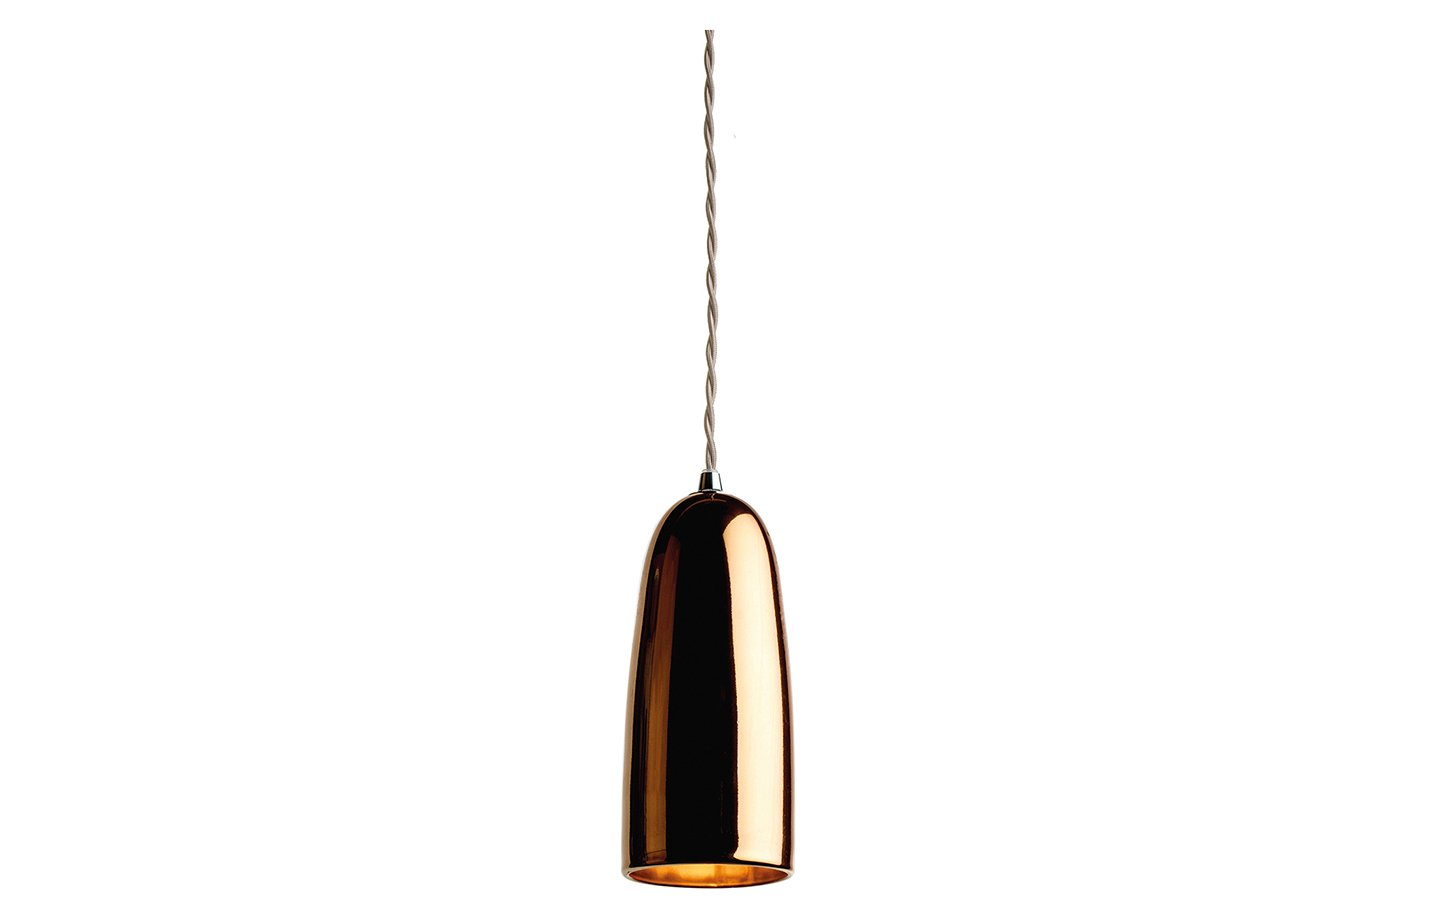 Cloak and dagger pendant lamp – Copper